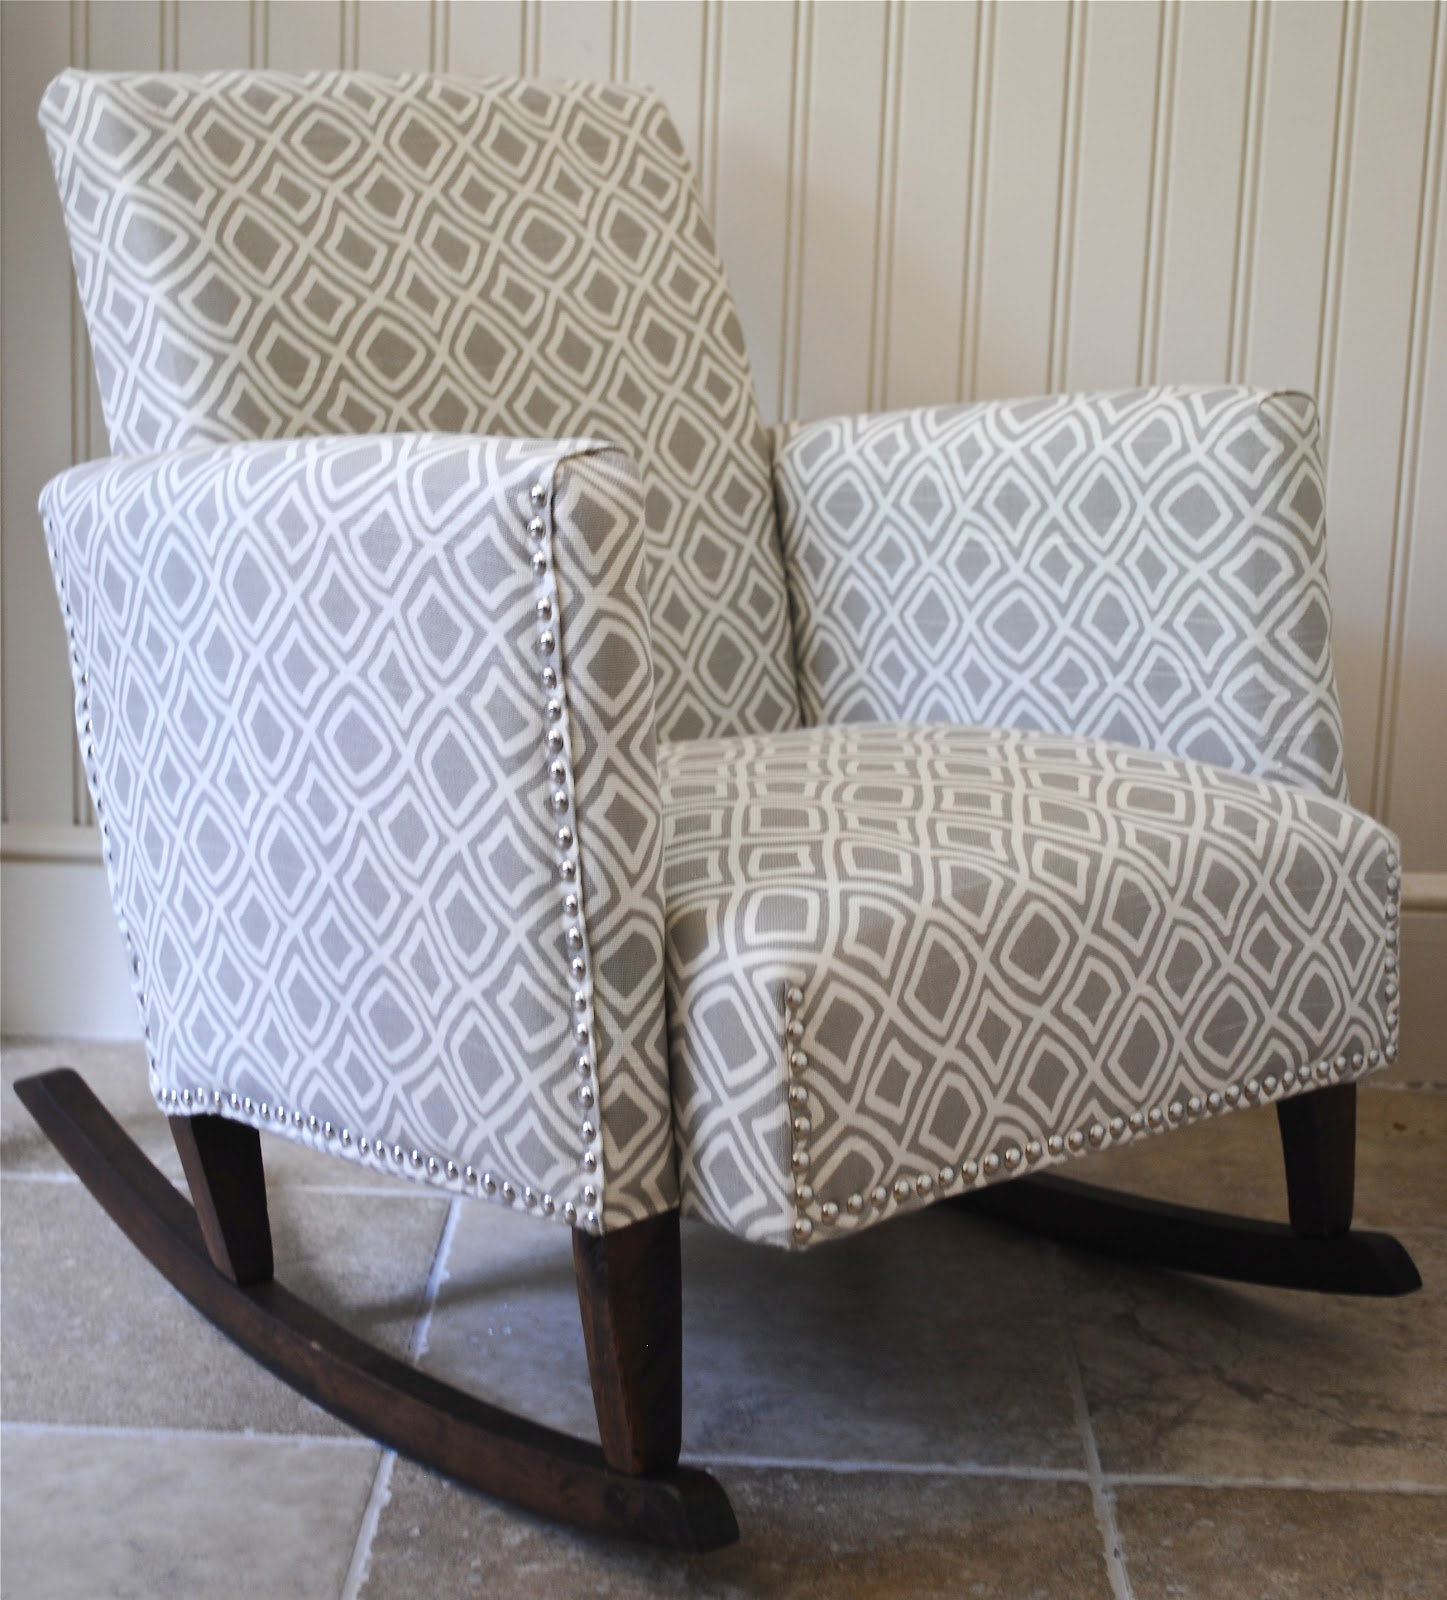 DIY}ish Upholstered Childs Rocking Chair - The Chronicles of Home